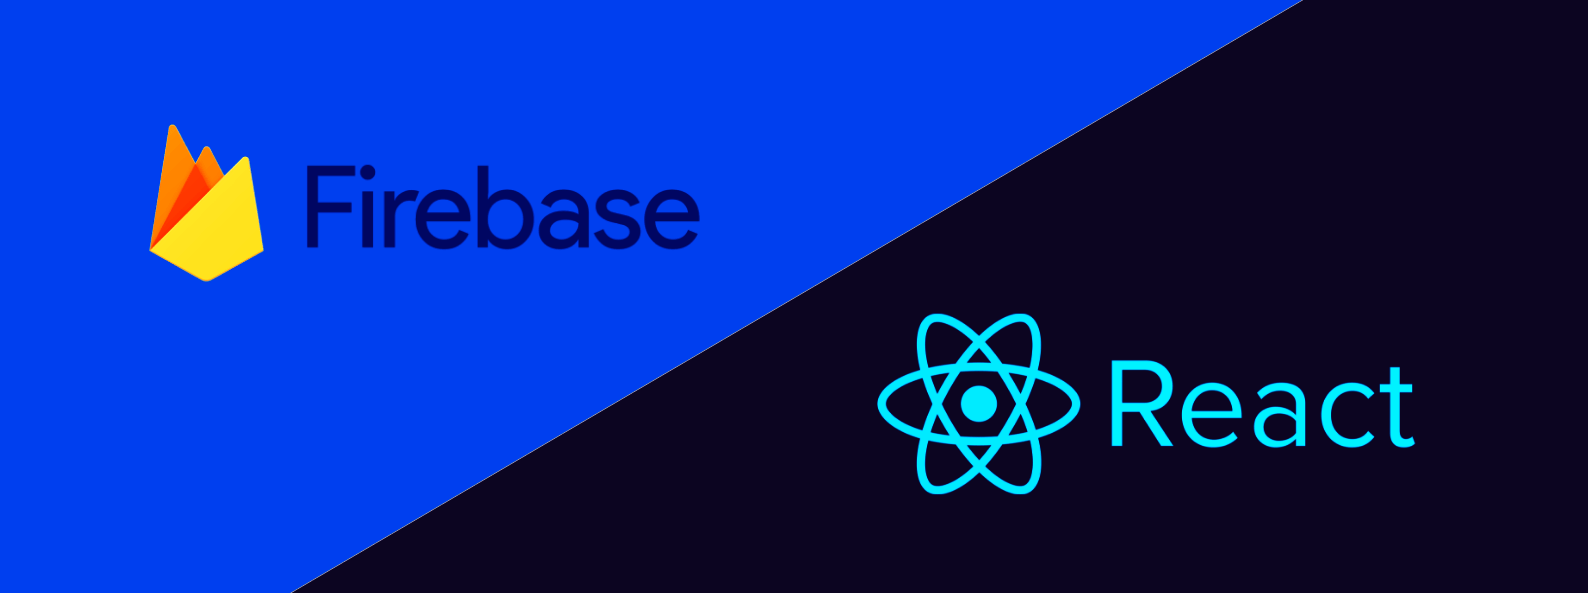 react firebase stack